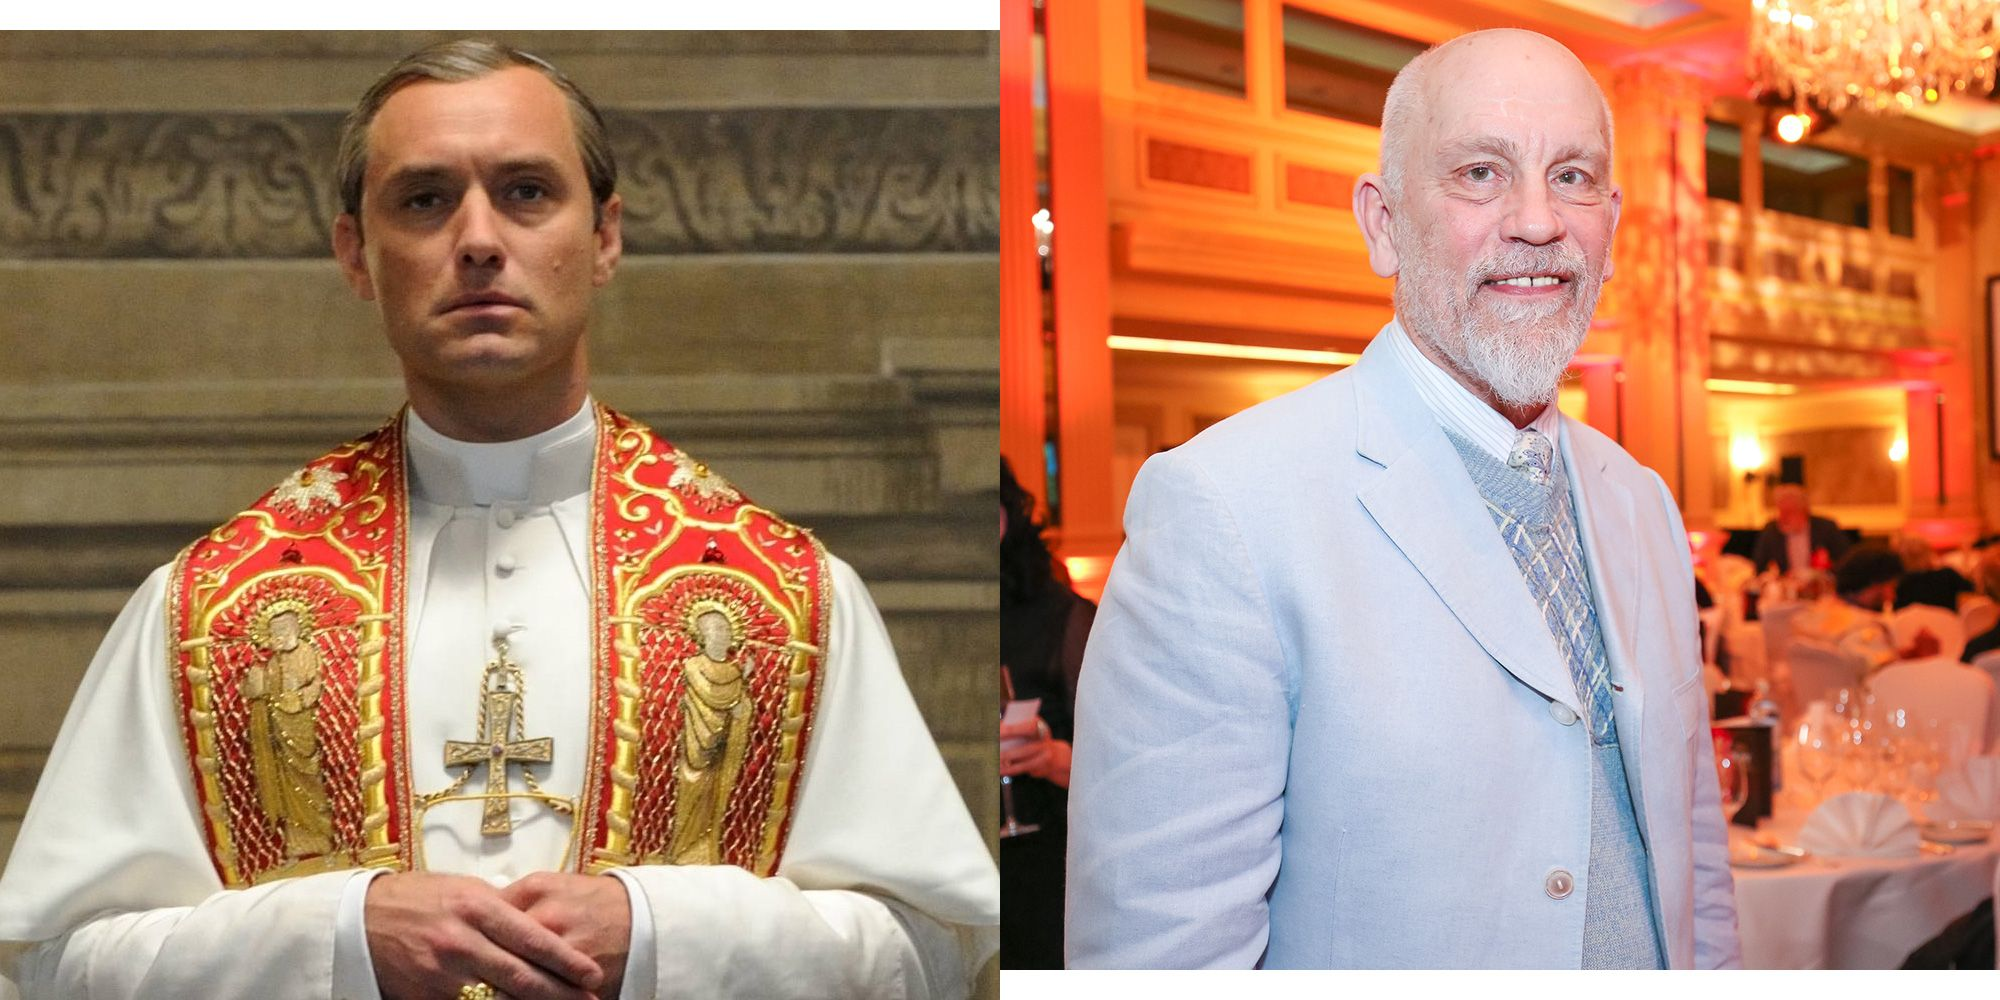 The Young Pope Season 2 - Jude Law and John Malkovich Will